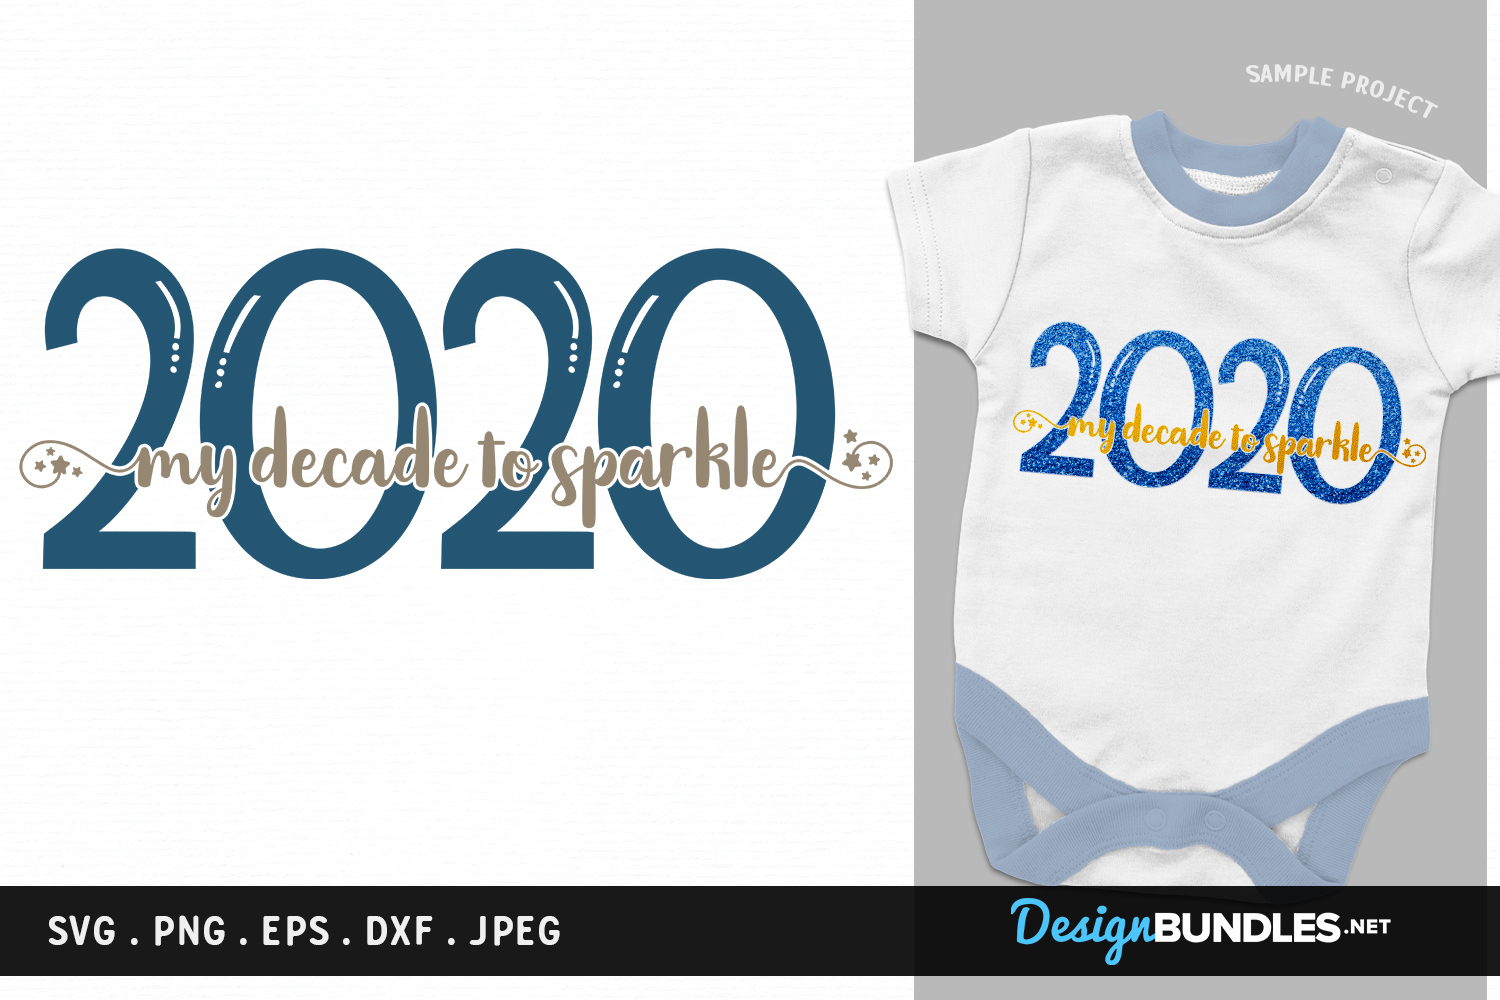 2020 -My Decade to Sparkle - new year svg cut file, printabl example image 1